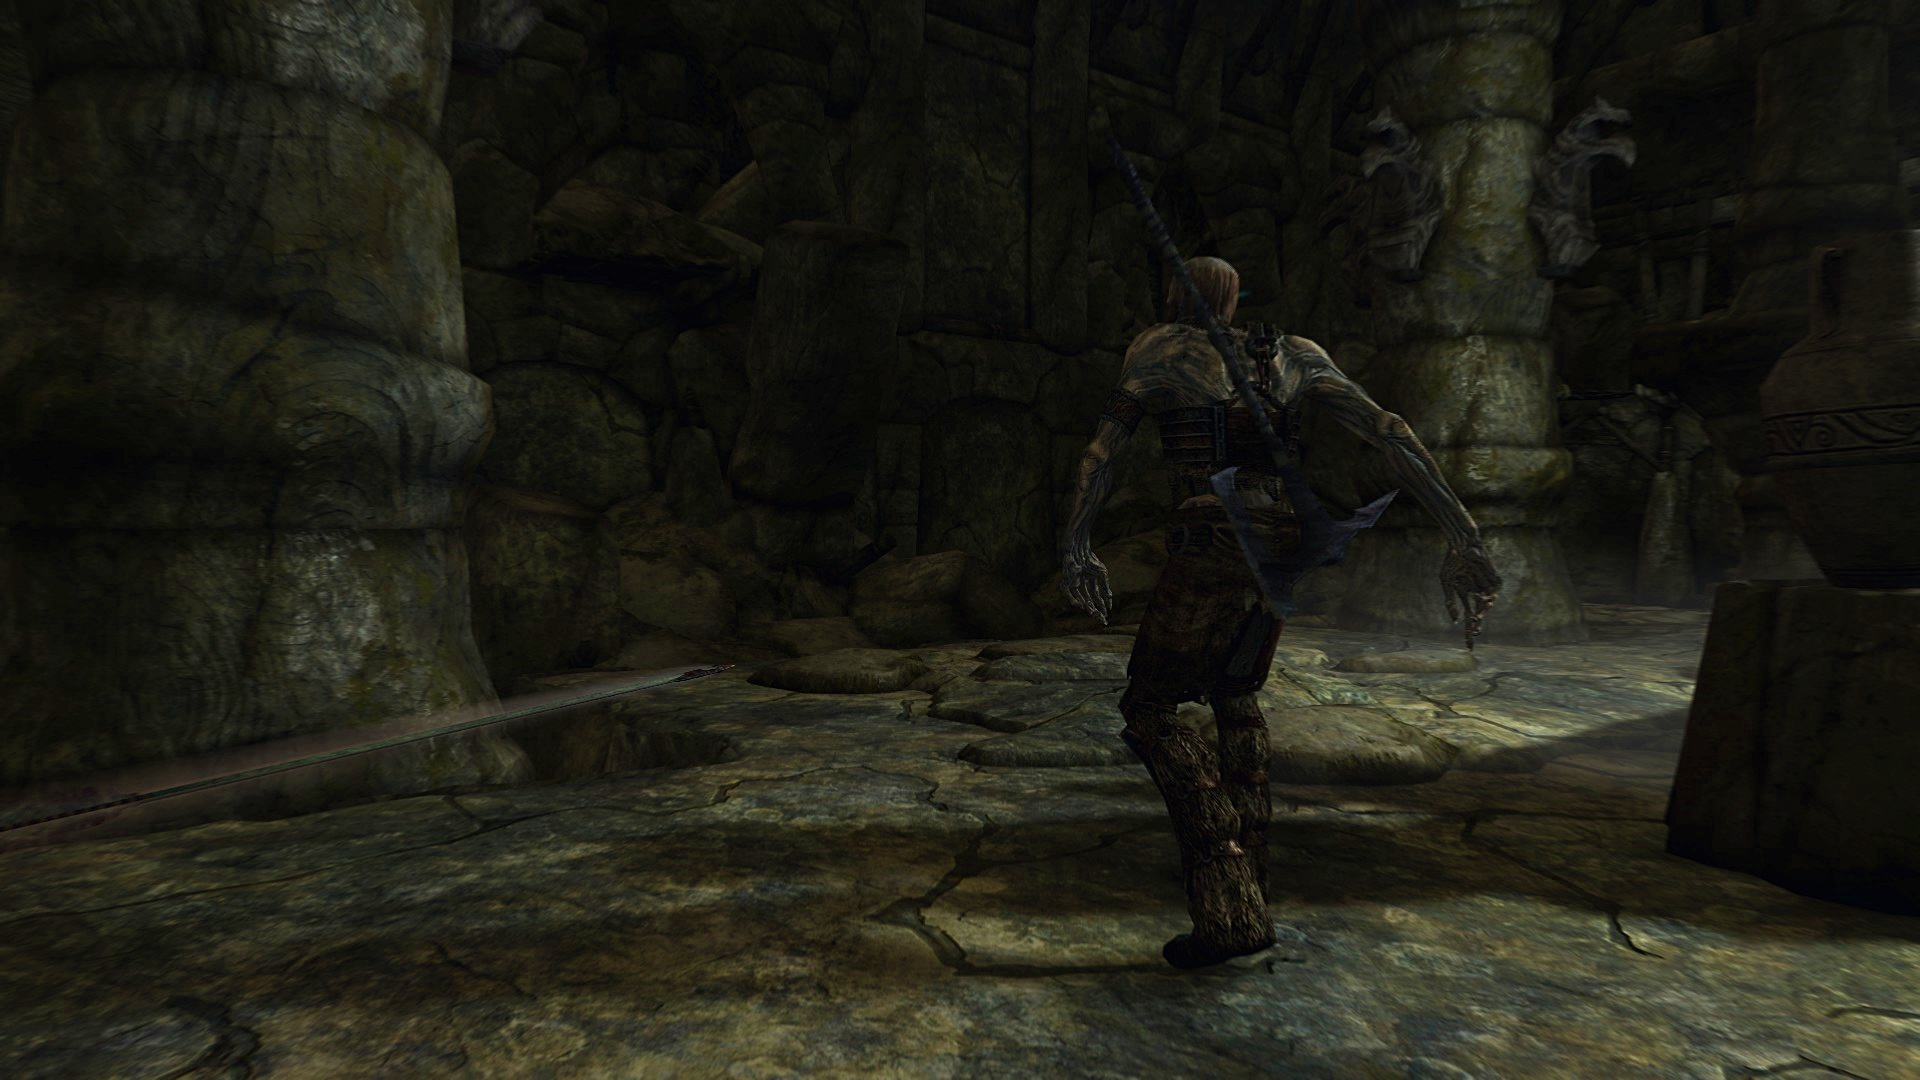 Skyrim Draugr being hit by an arrow